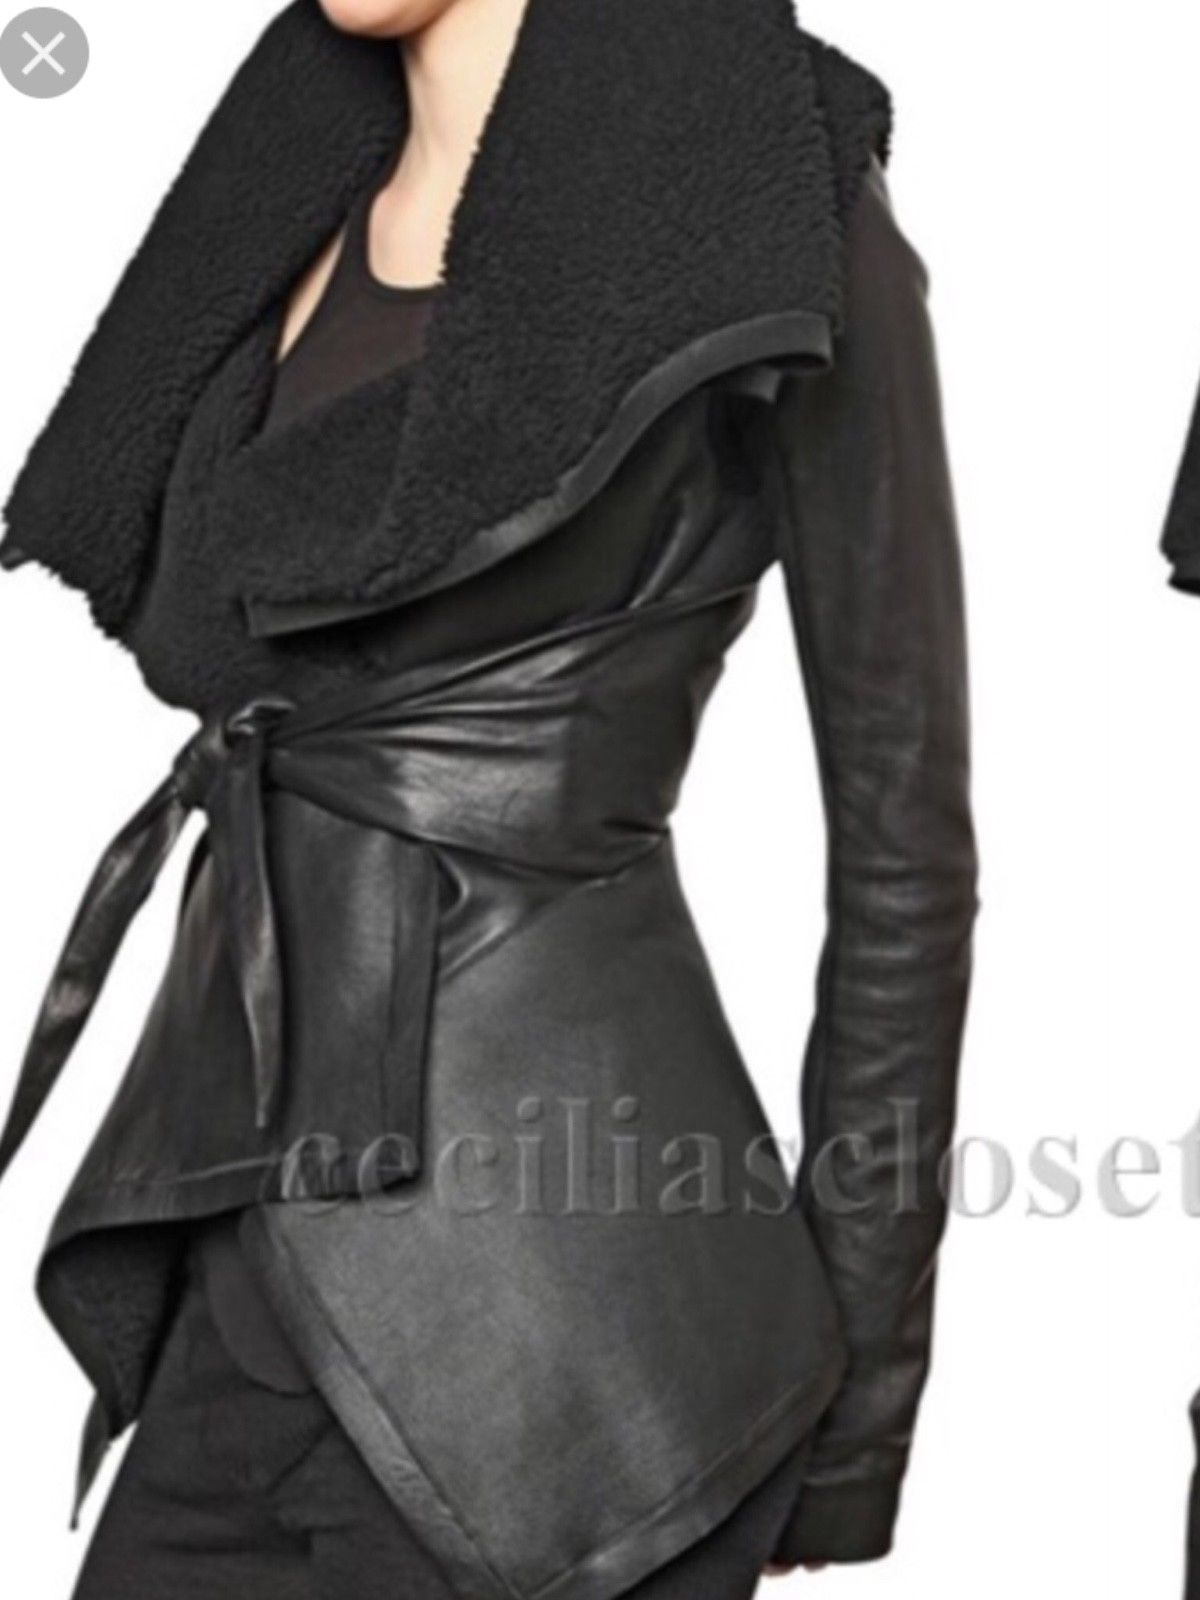 Rick Owens Black Shearling and Leather Wrap Jacket sz 44